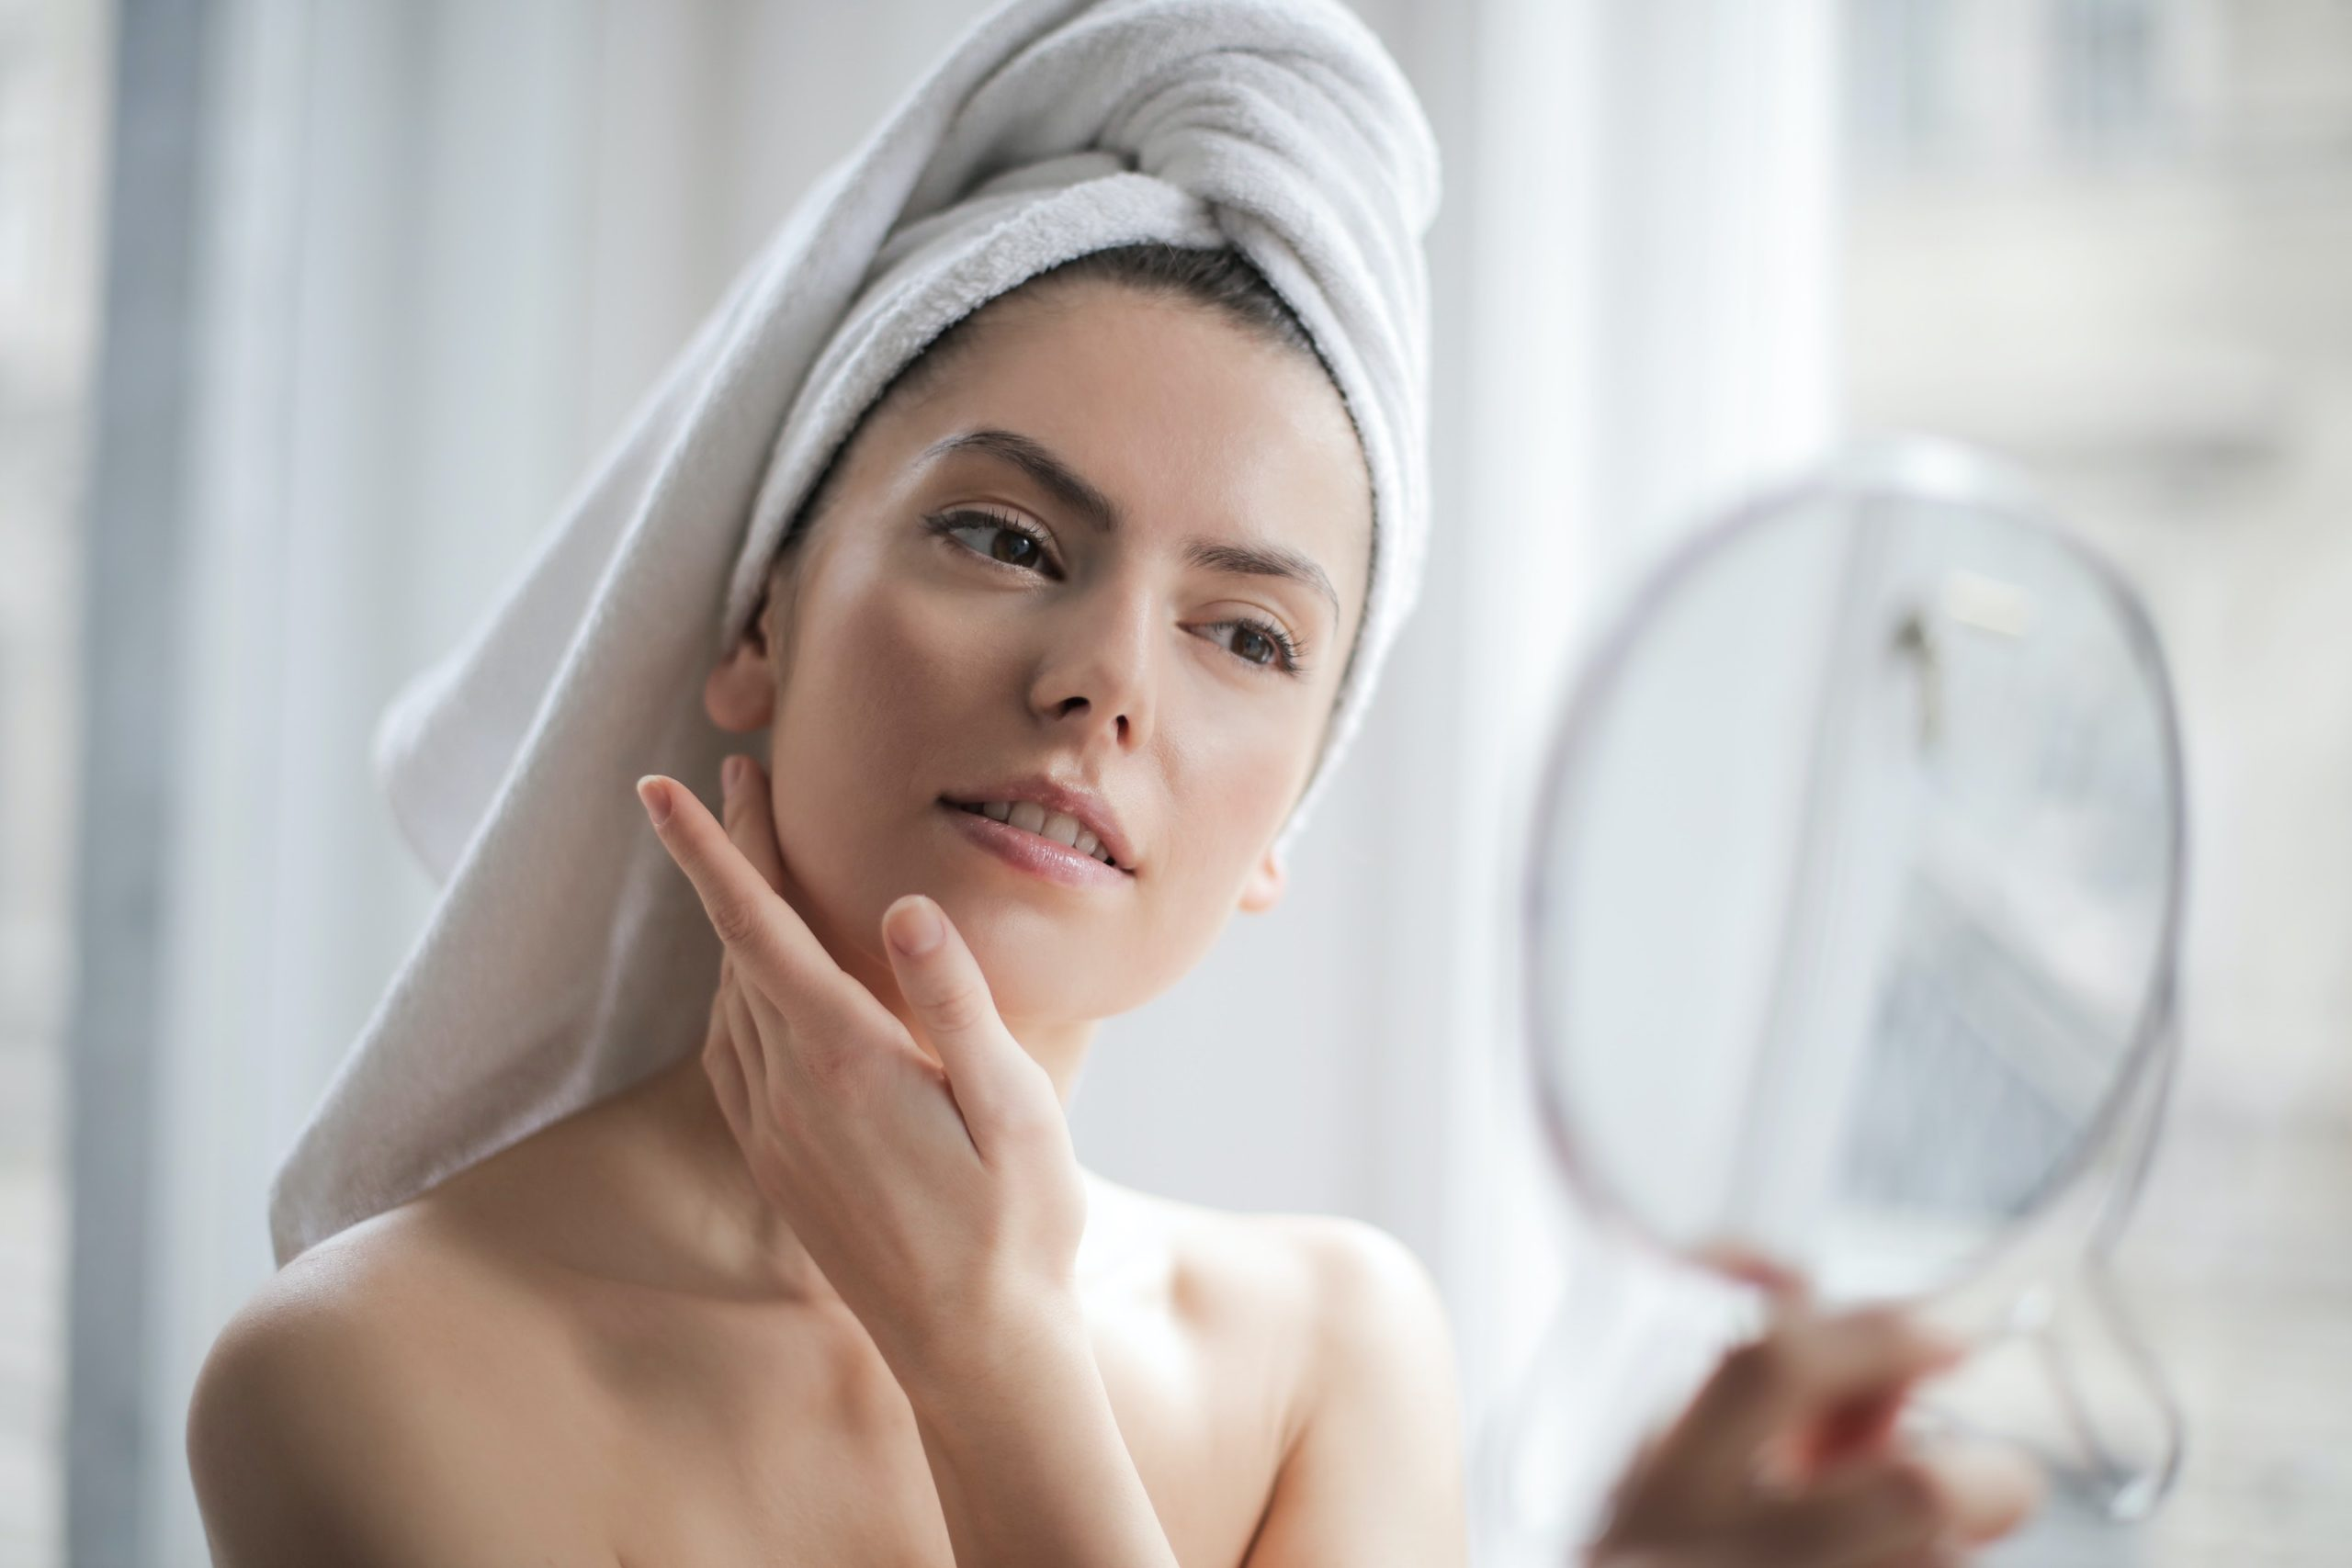 Is There a Right and Wrong Way to Wash Your Face?